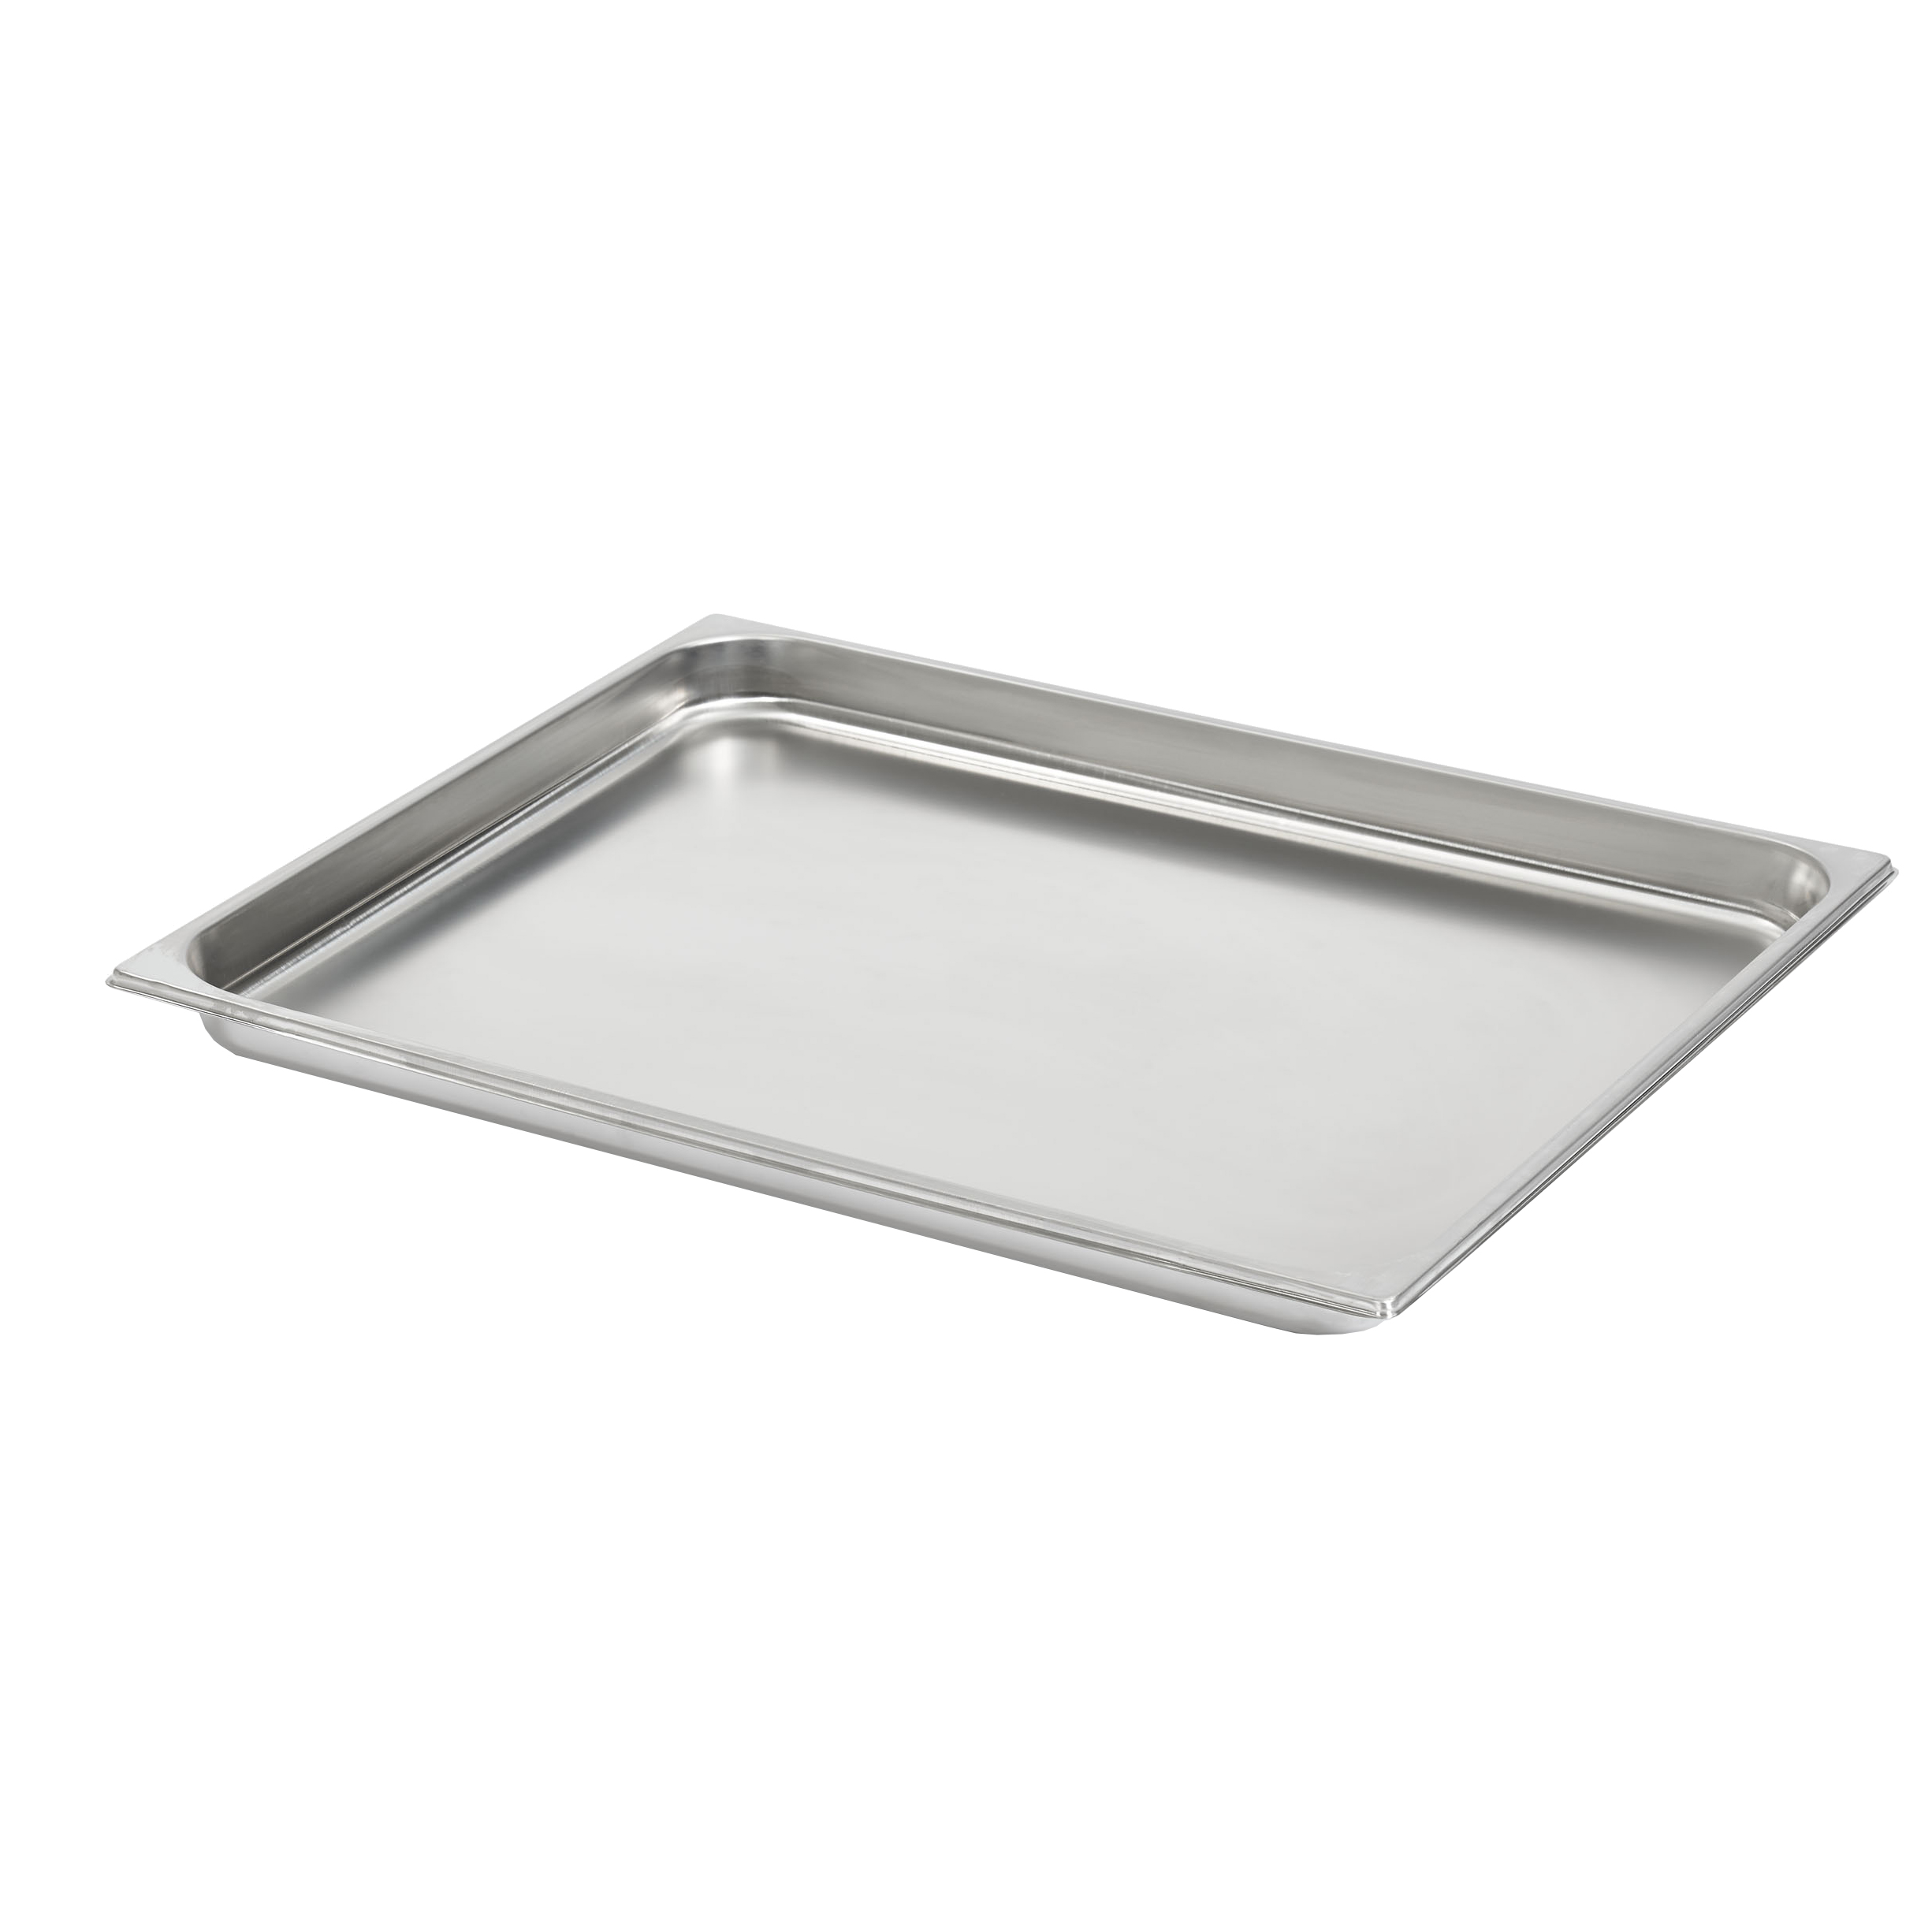 Vollrath V210401 steam table pan, stainless steel